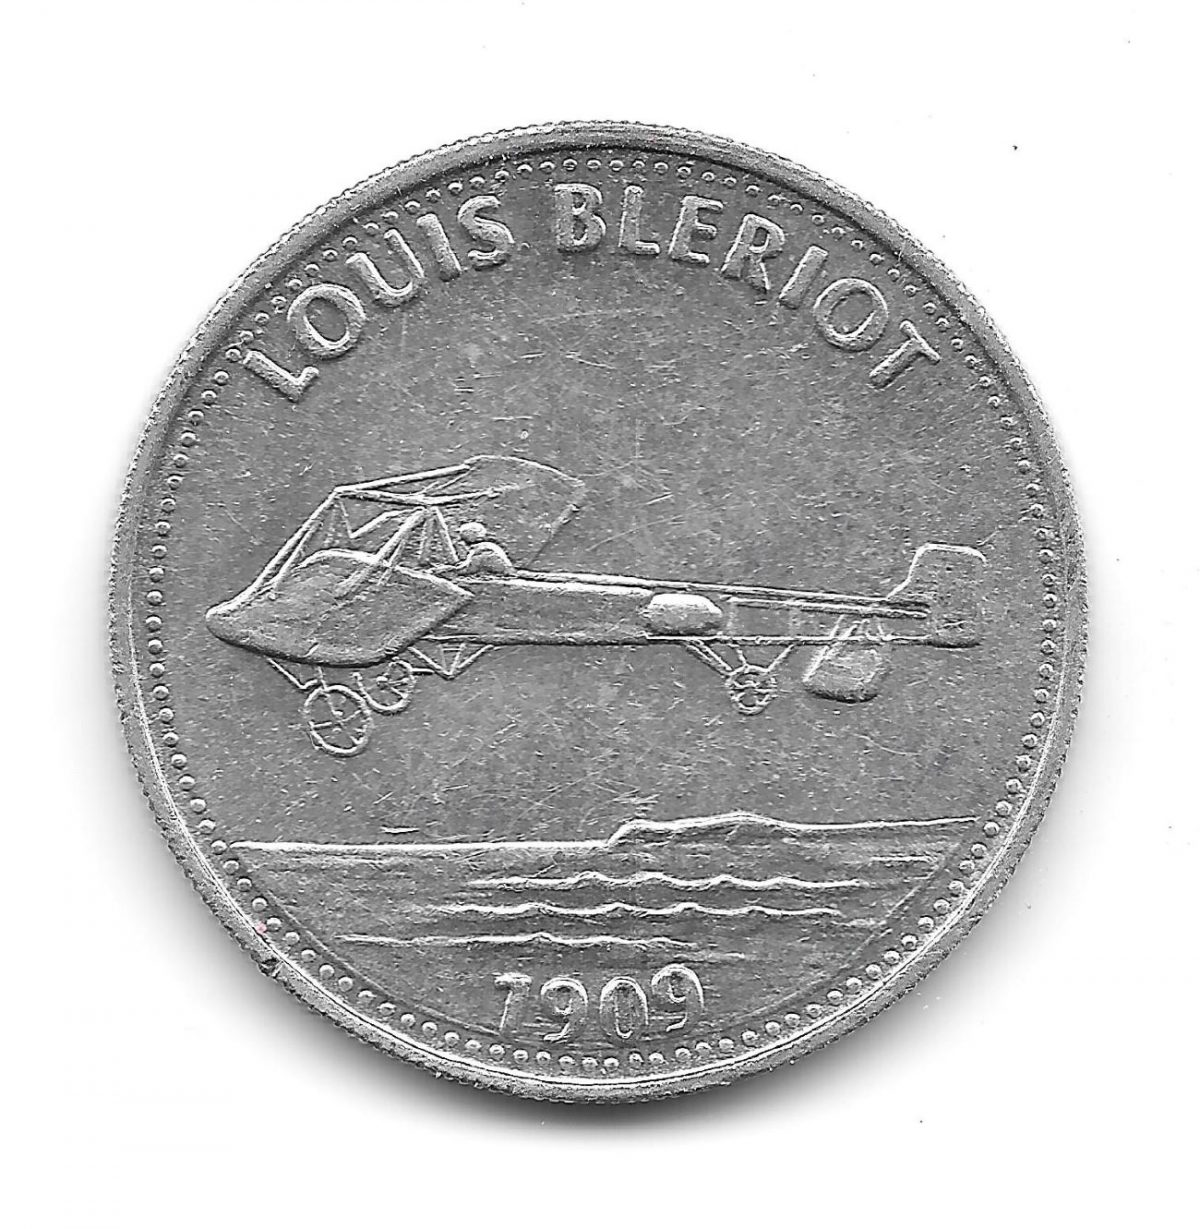 Shell, coins, Man in Flight, 1970s, Louis Blériot